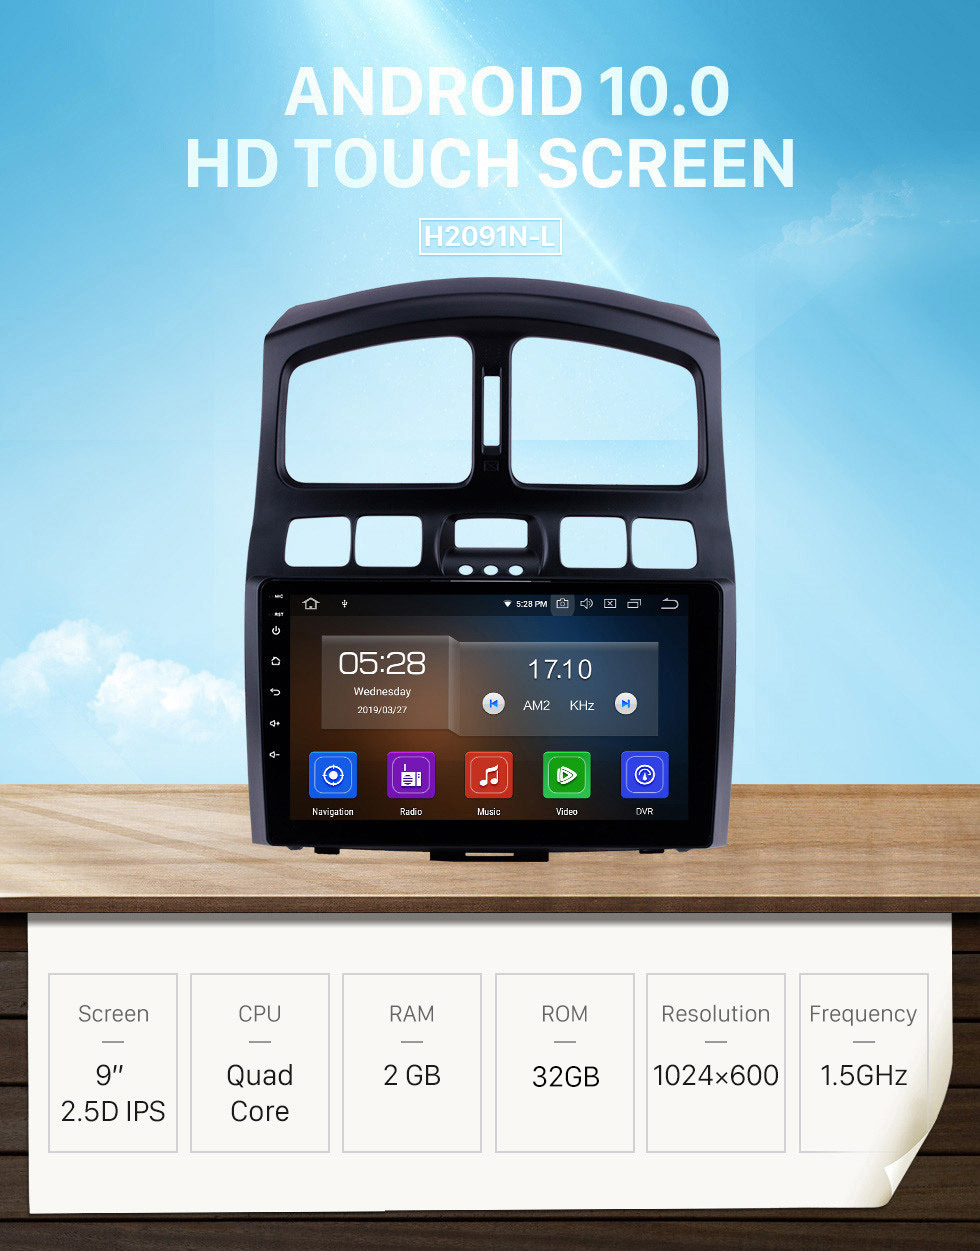 Seicane HD Touchscreen 9 inch Android 10.0 GPS Navigation auto Stereo for 2005 2006 2007 2008 2009-2015 Hyundai Santa Fe Bluetooth Phone Mirror Link WIFI USB Carplay support DVR